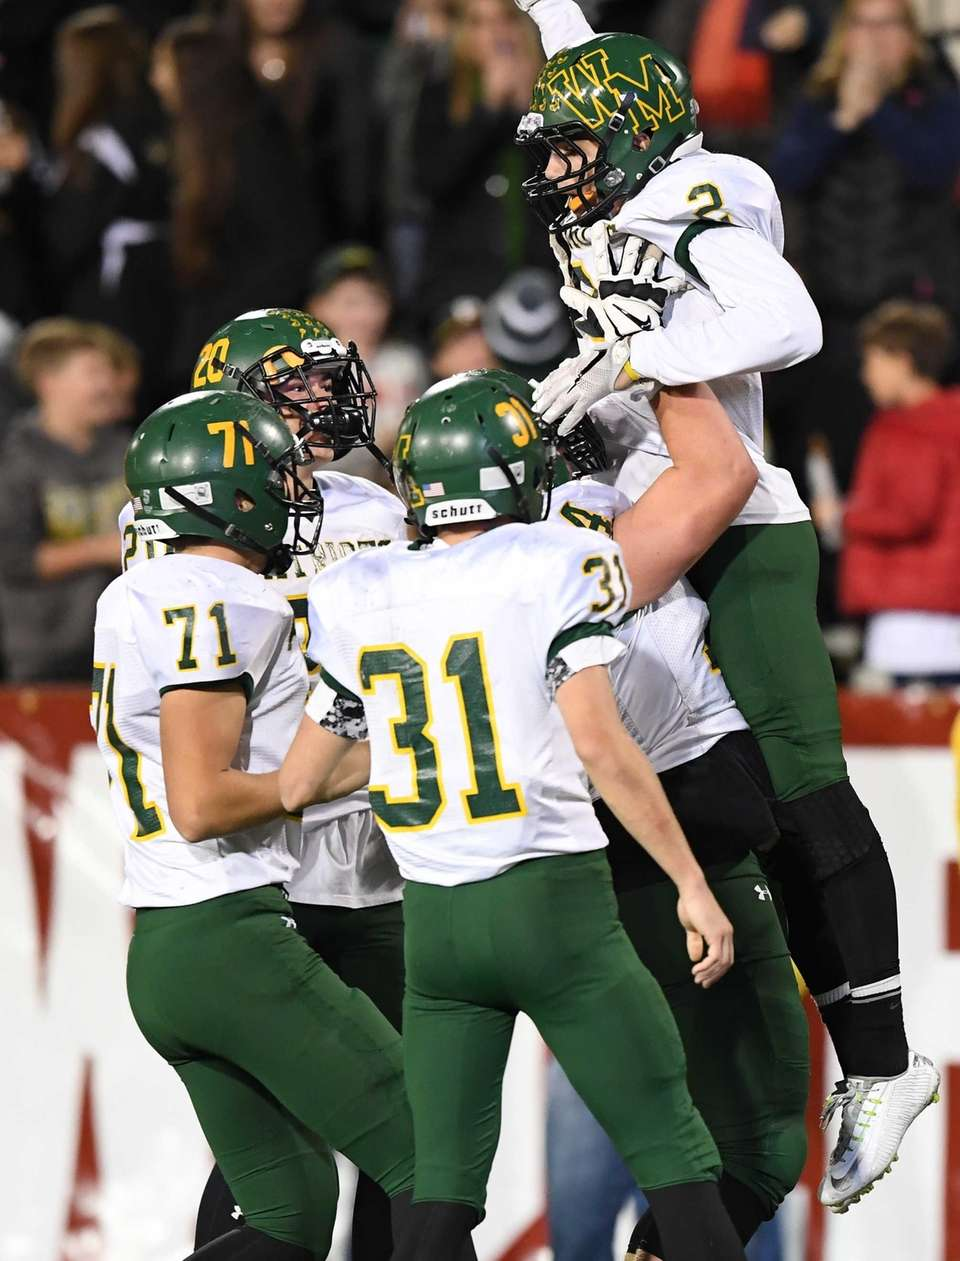 Ward Melville's Dominic Pryor celebrates his touchdown with